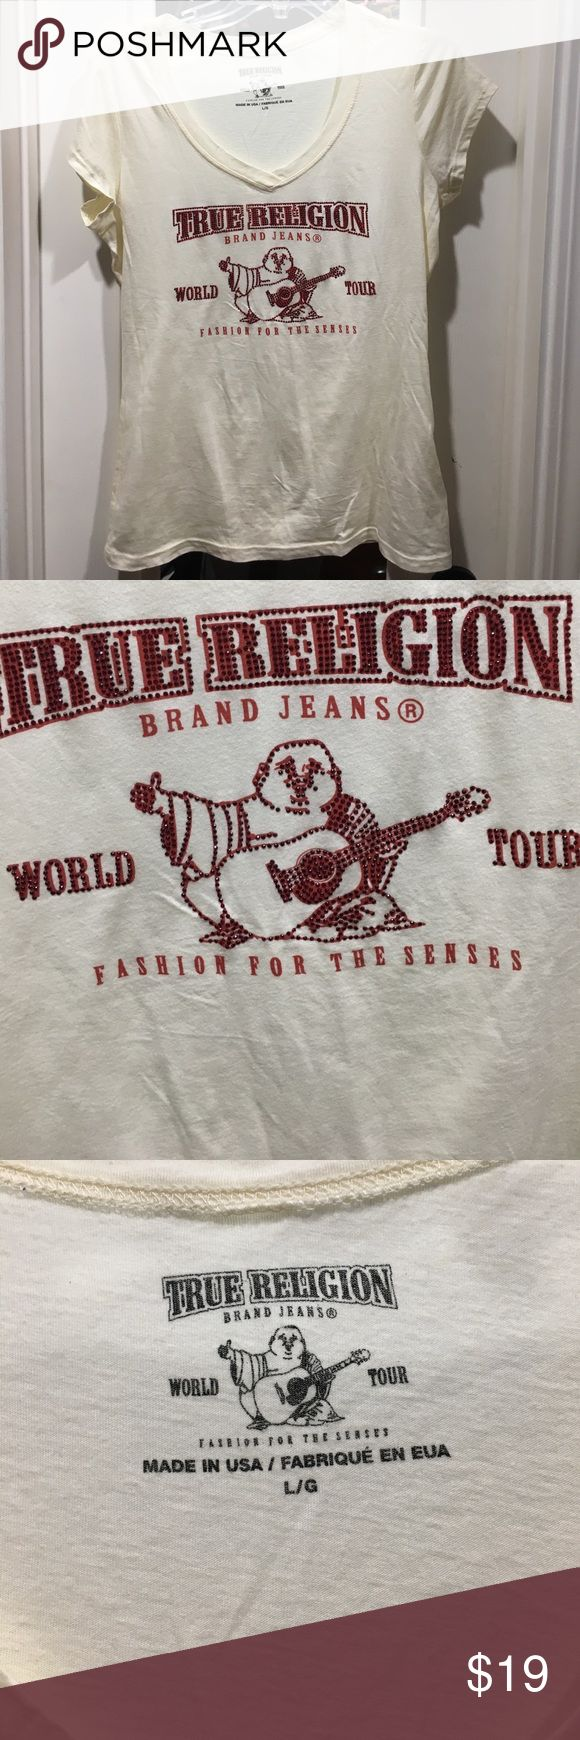 True religion T shirt for women True religion V neck t shirt for women. Cream color with red writing and studs. Couple of studs may have fallen off but not visible. May show very little signs of wear. Size L.  No damages or stains. True Religion Tops Tees - Short Sleeve